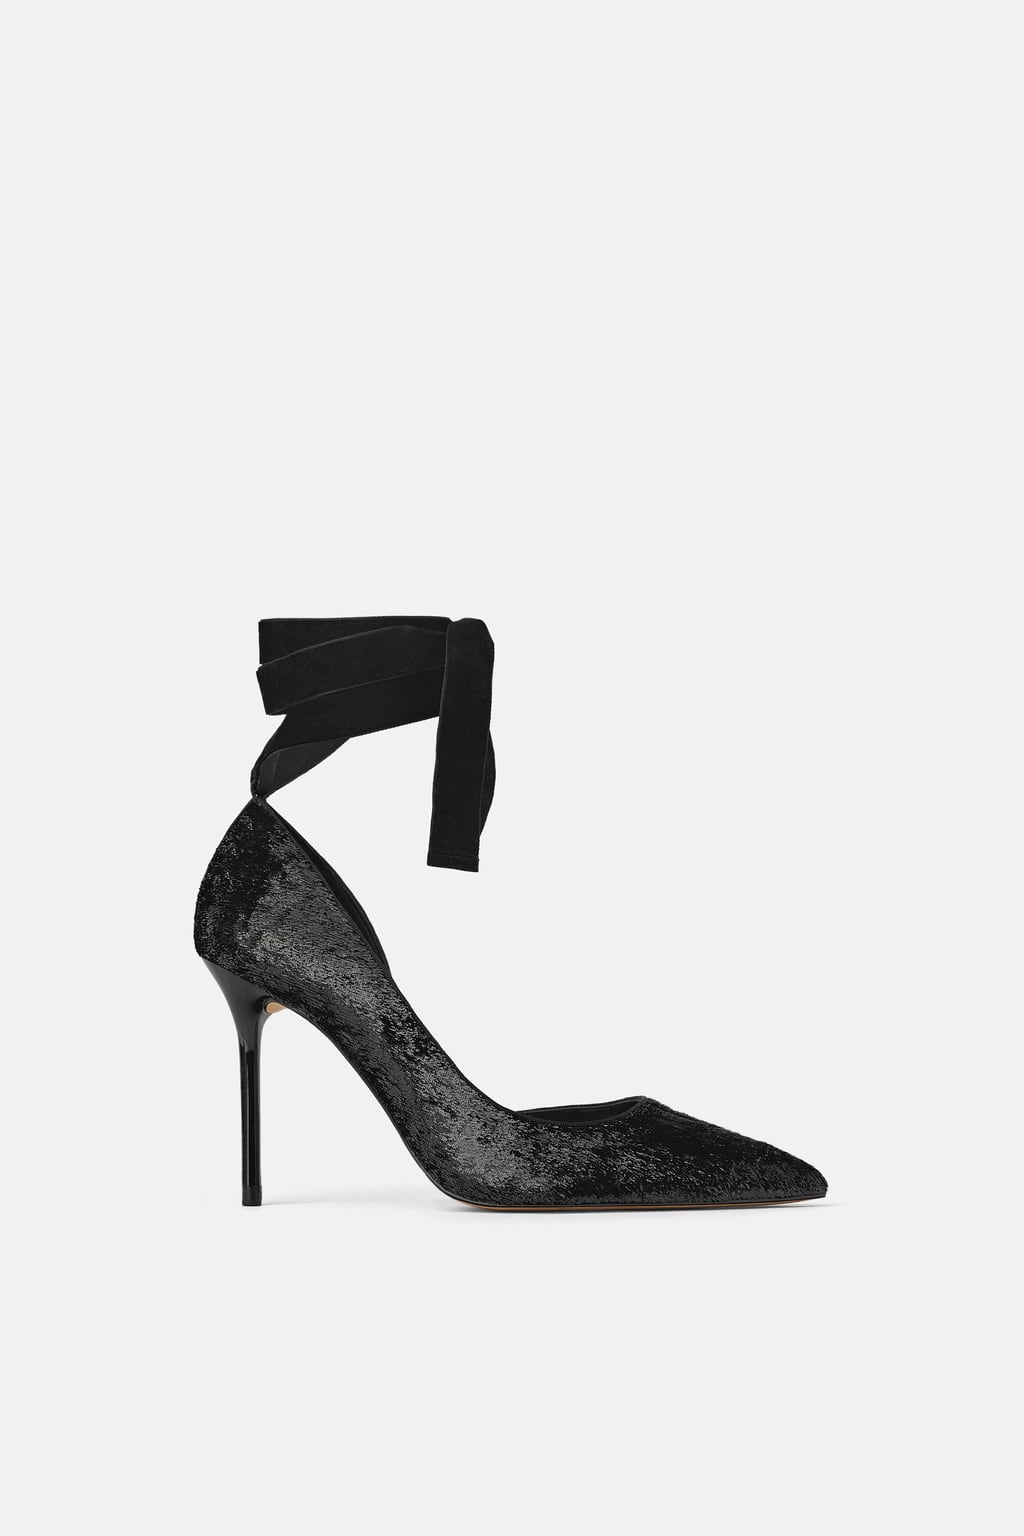 ZARA Shiny High Heel- $69.90